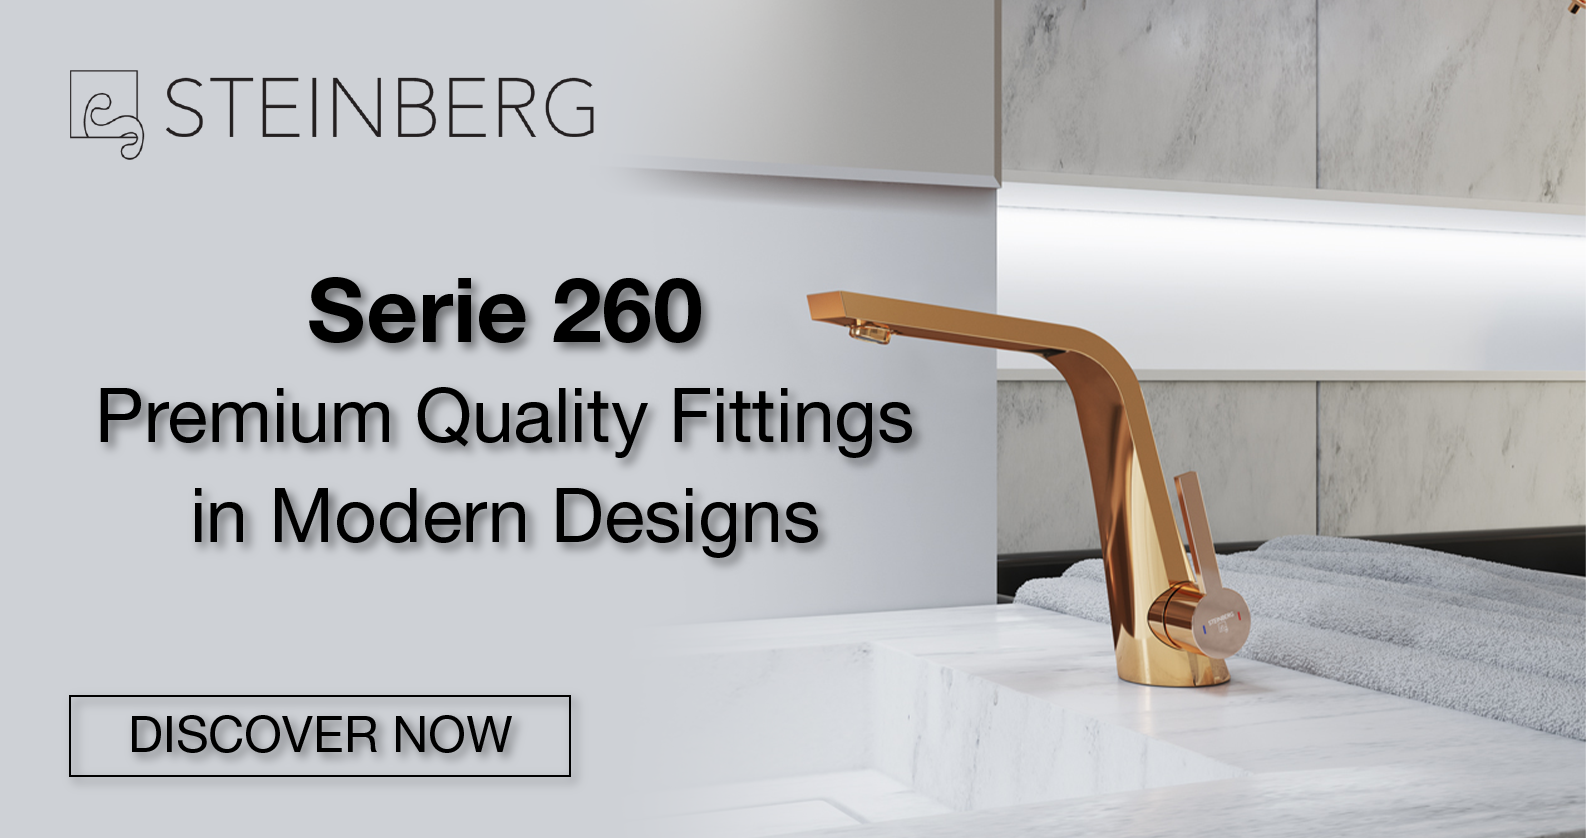 Steinberg Serie 260 at xTWOstore